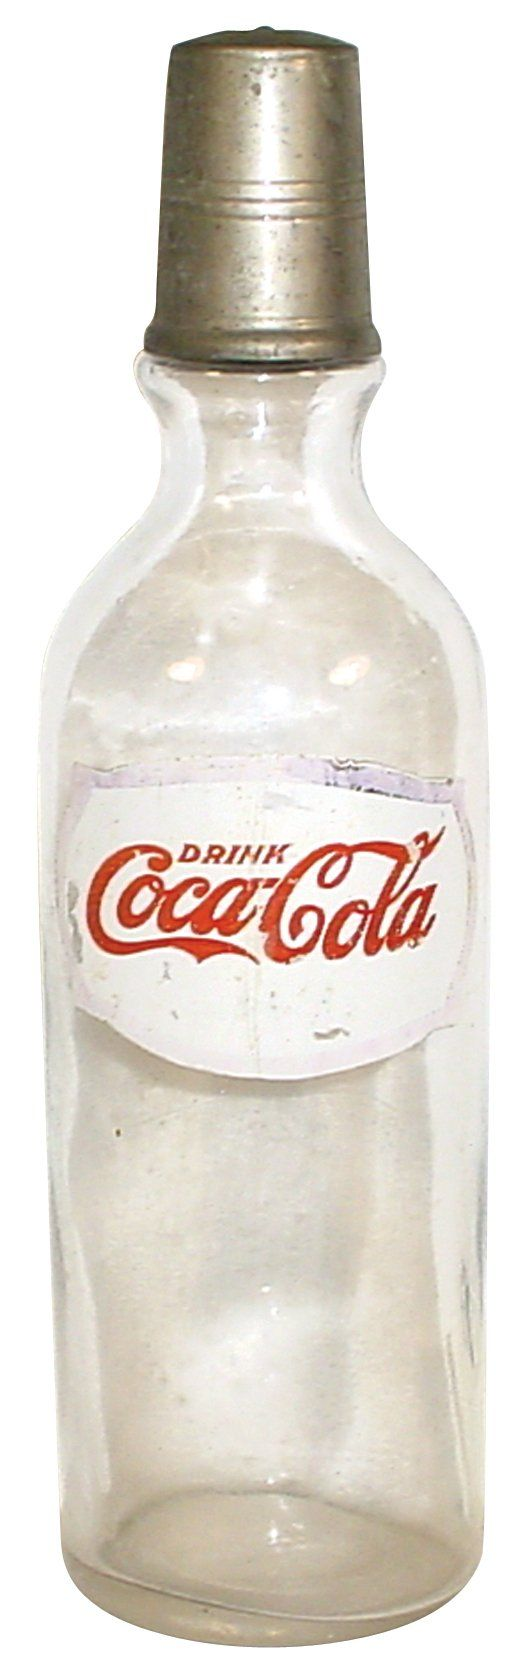 Soda fountain syrup bottle, Coca-Cola, applied color label, glass w/metal pour cap